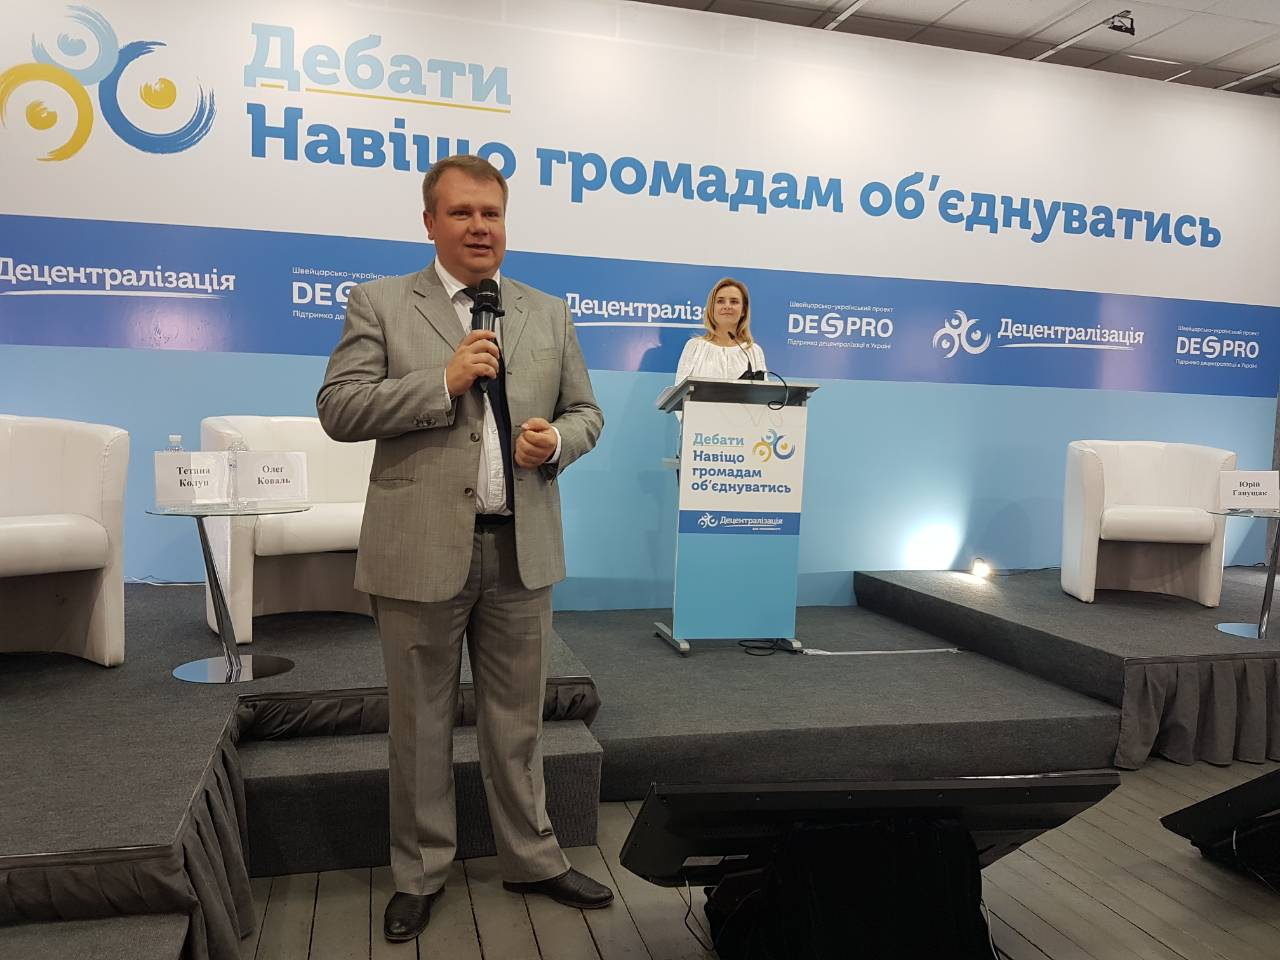 Vinnytsia Oblast discusses whether hromadas should amalgamate